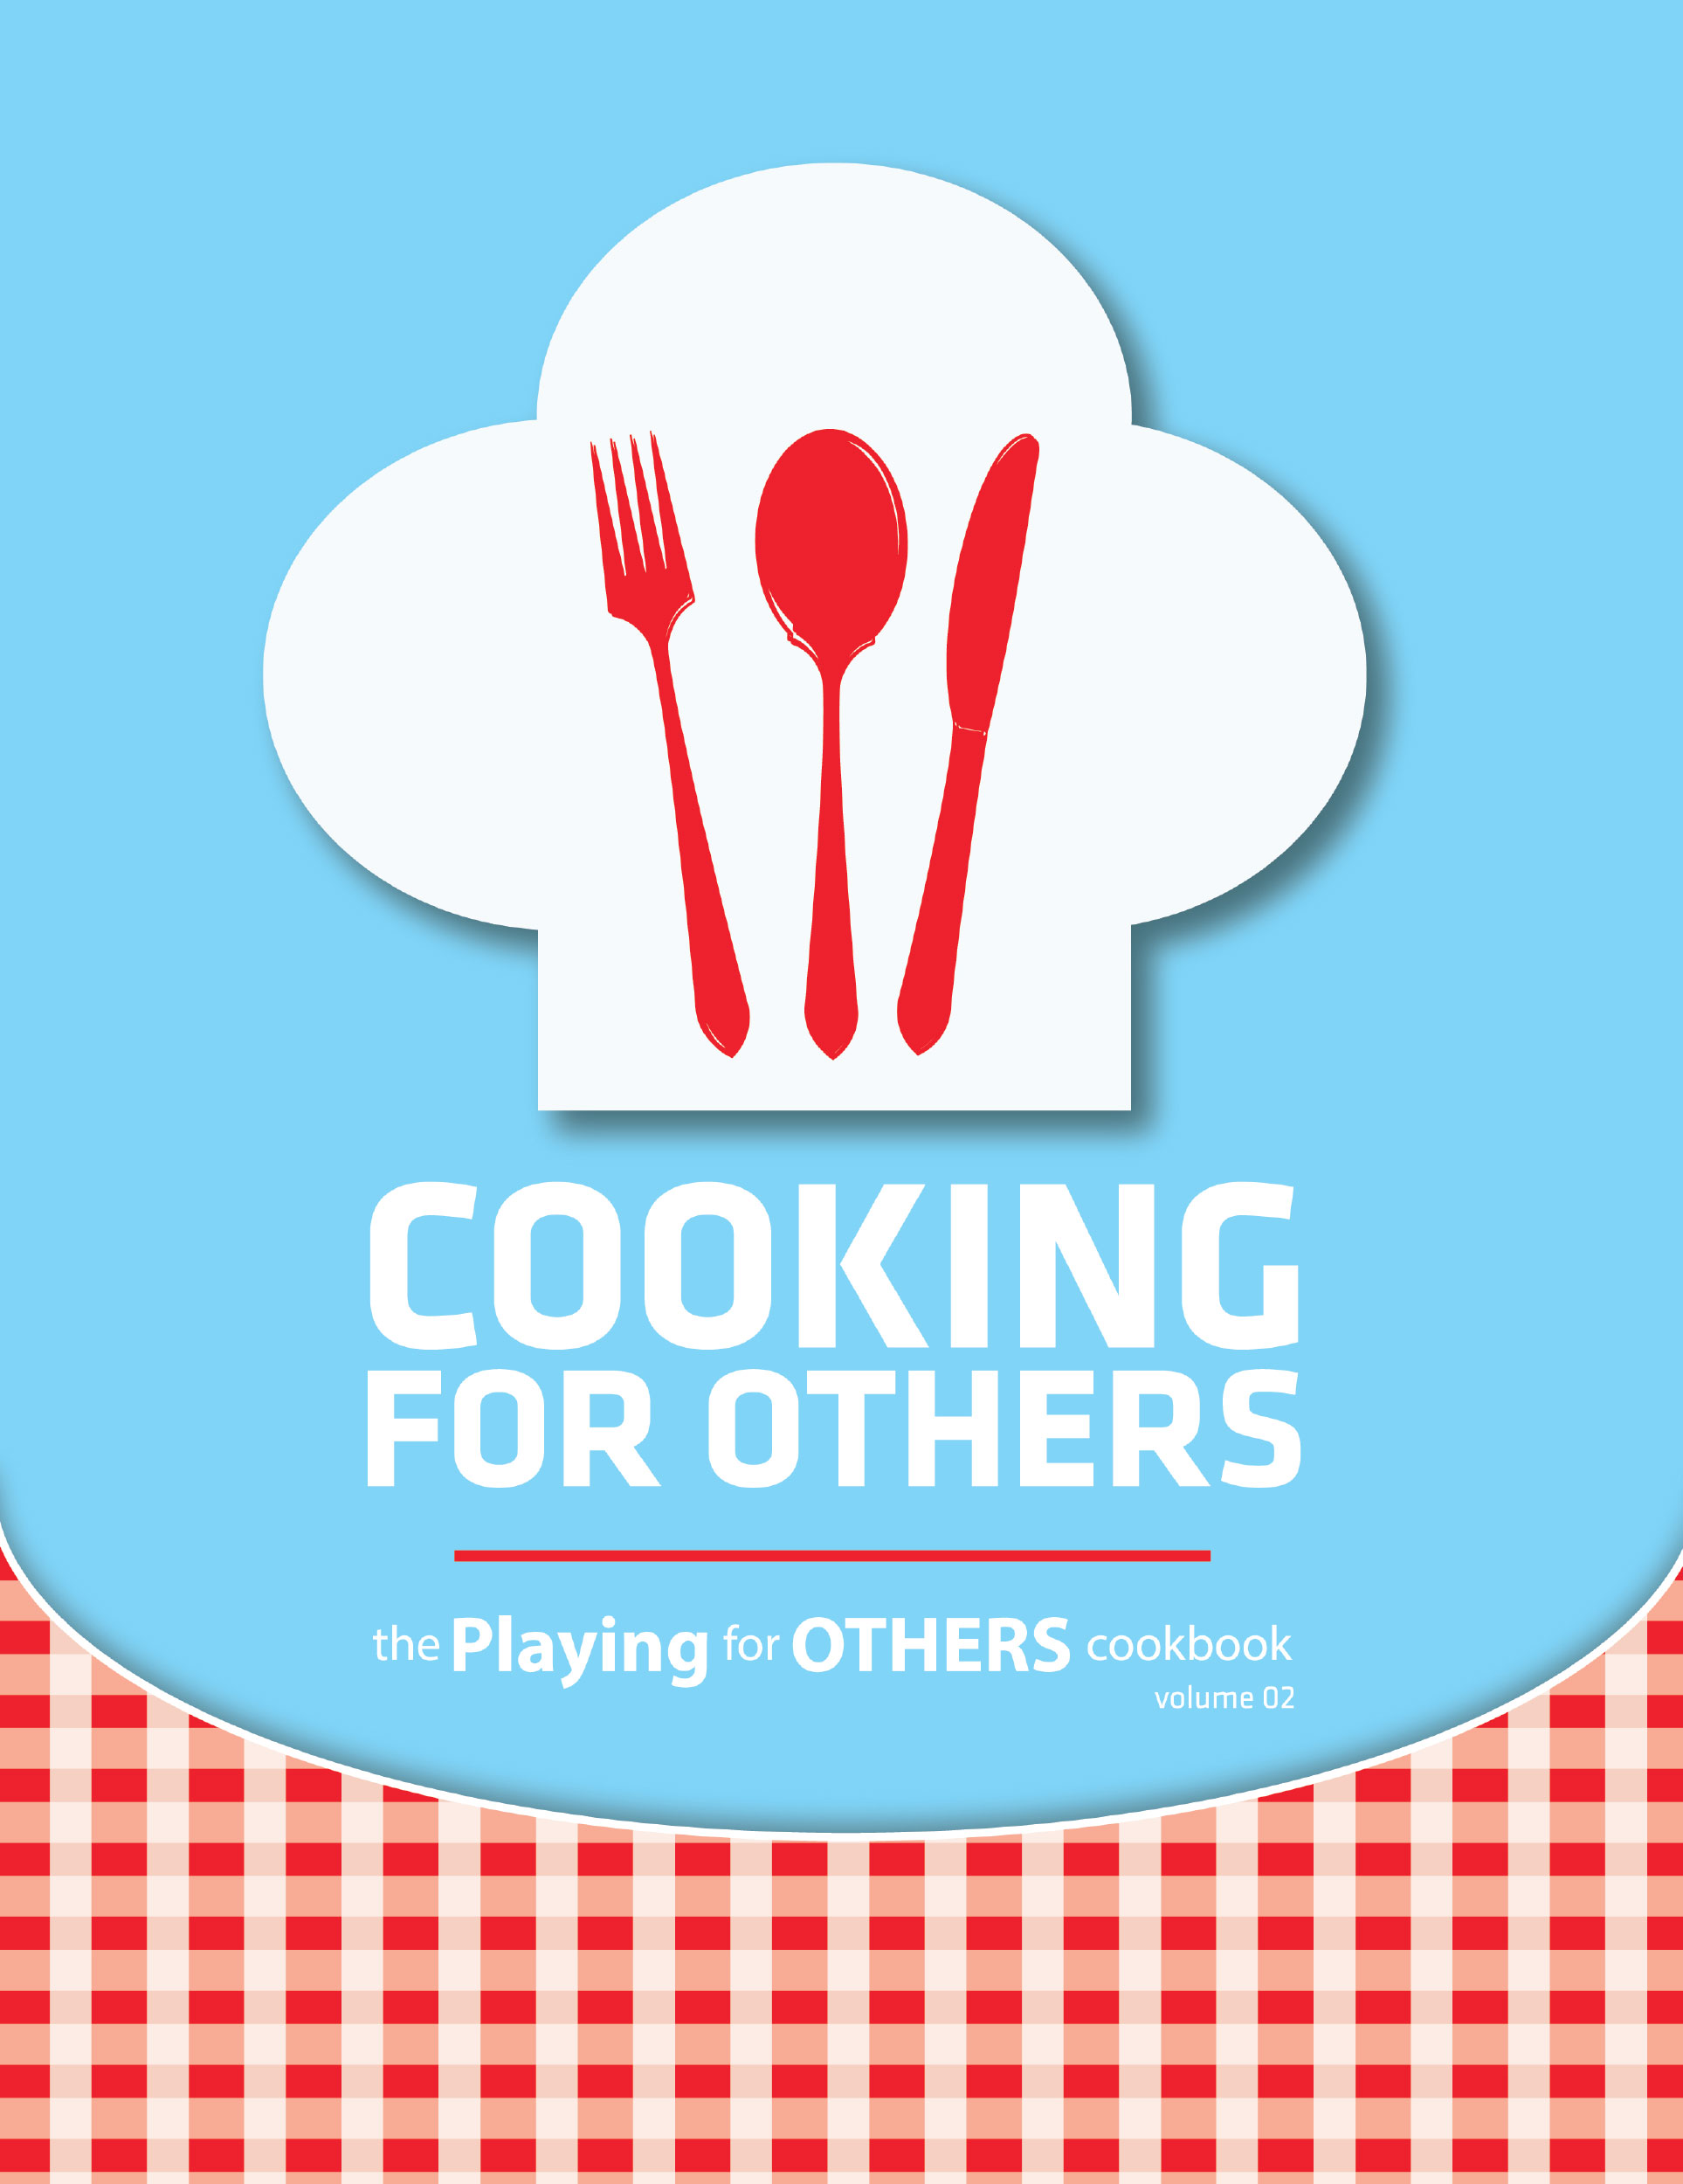 Playing for Other, Cooking for Other, Cook book design, Book cover design